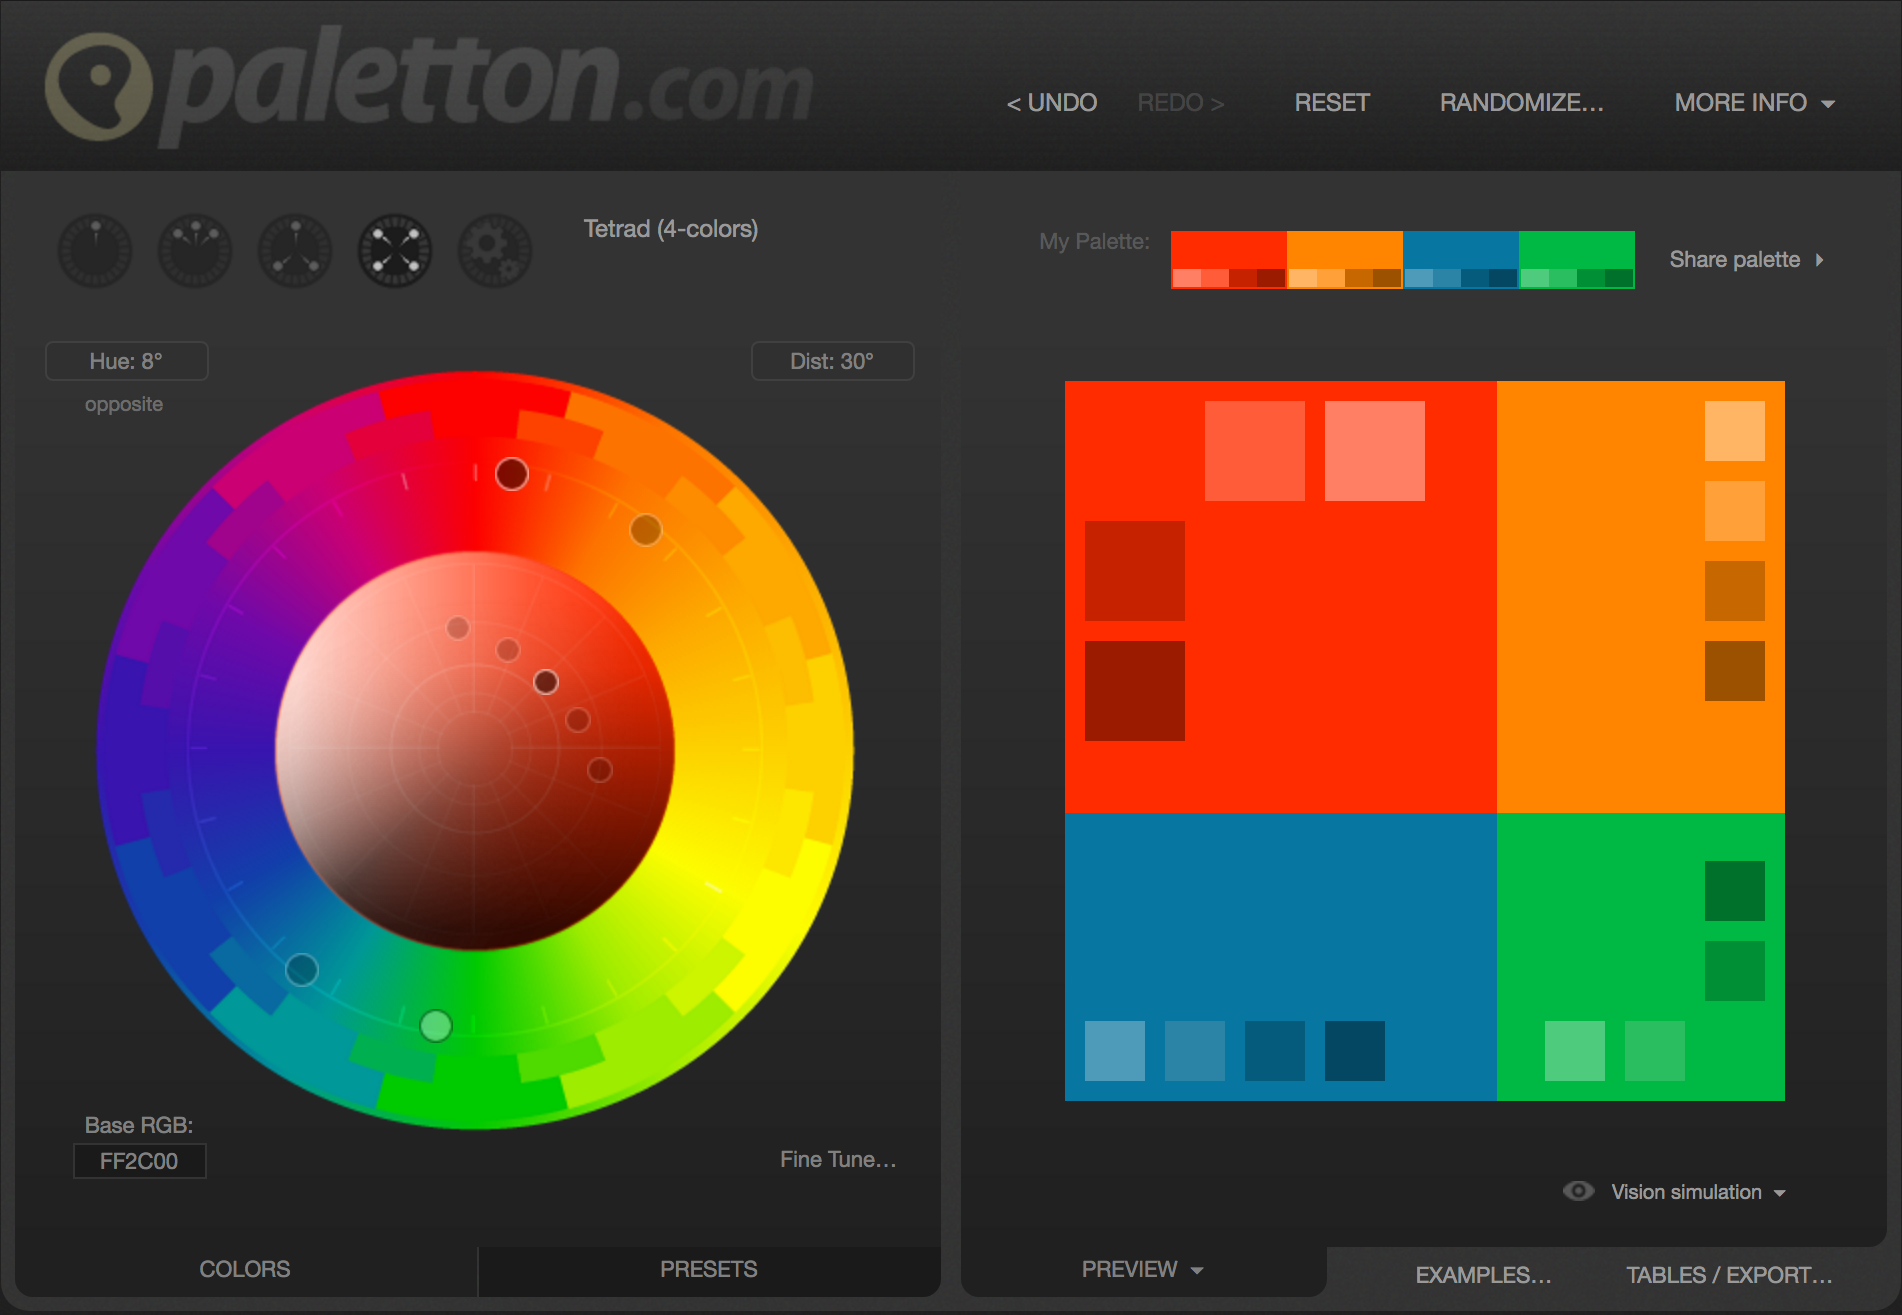 The color scheme selected at paletton.com for our sample page